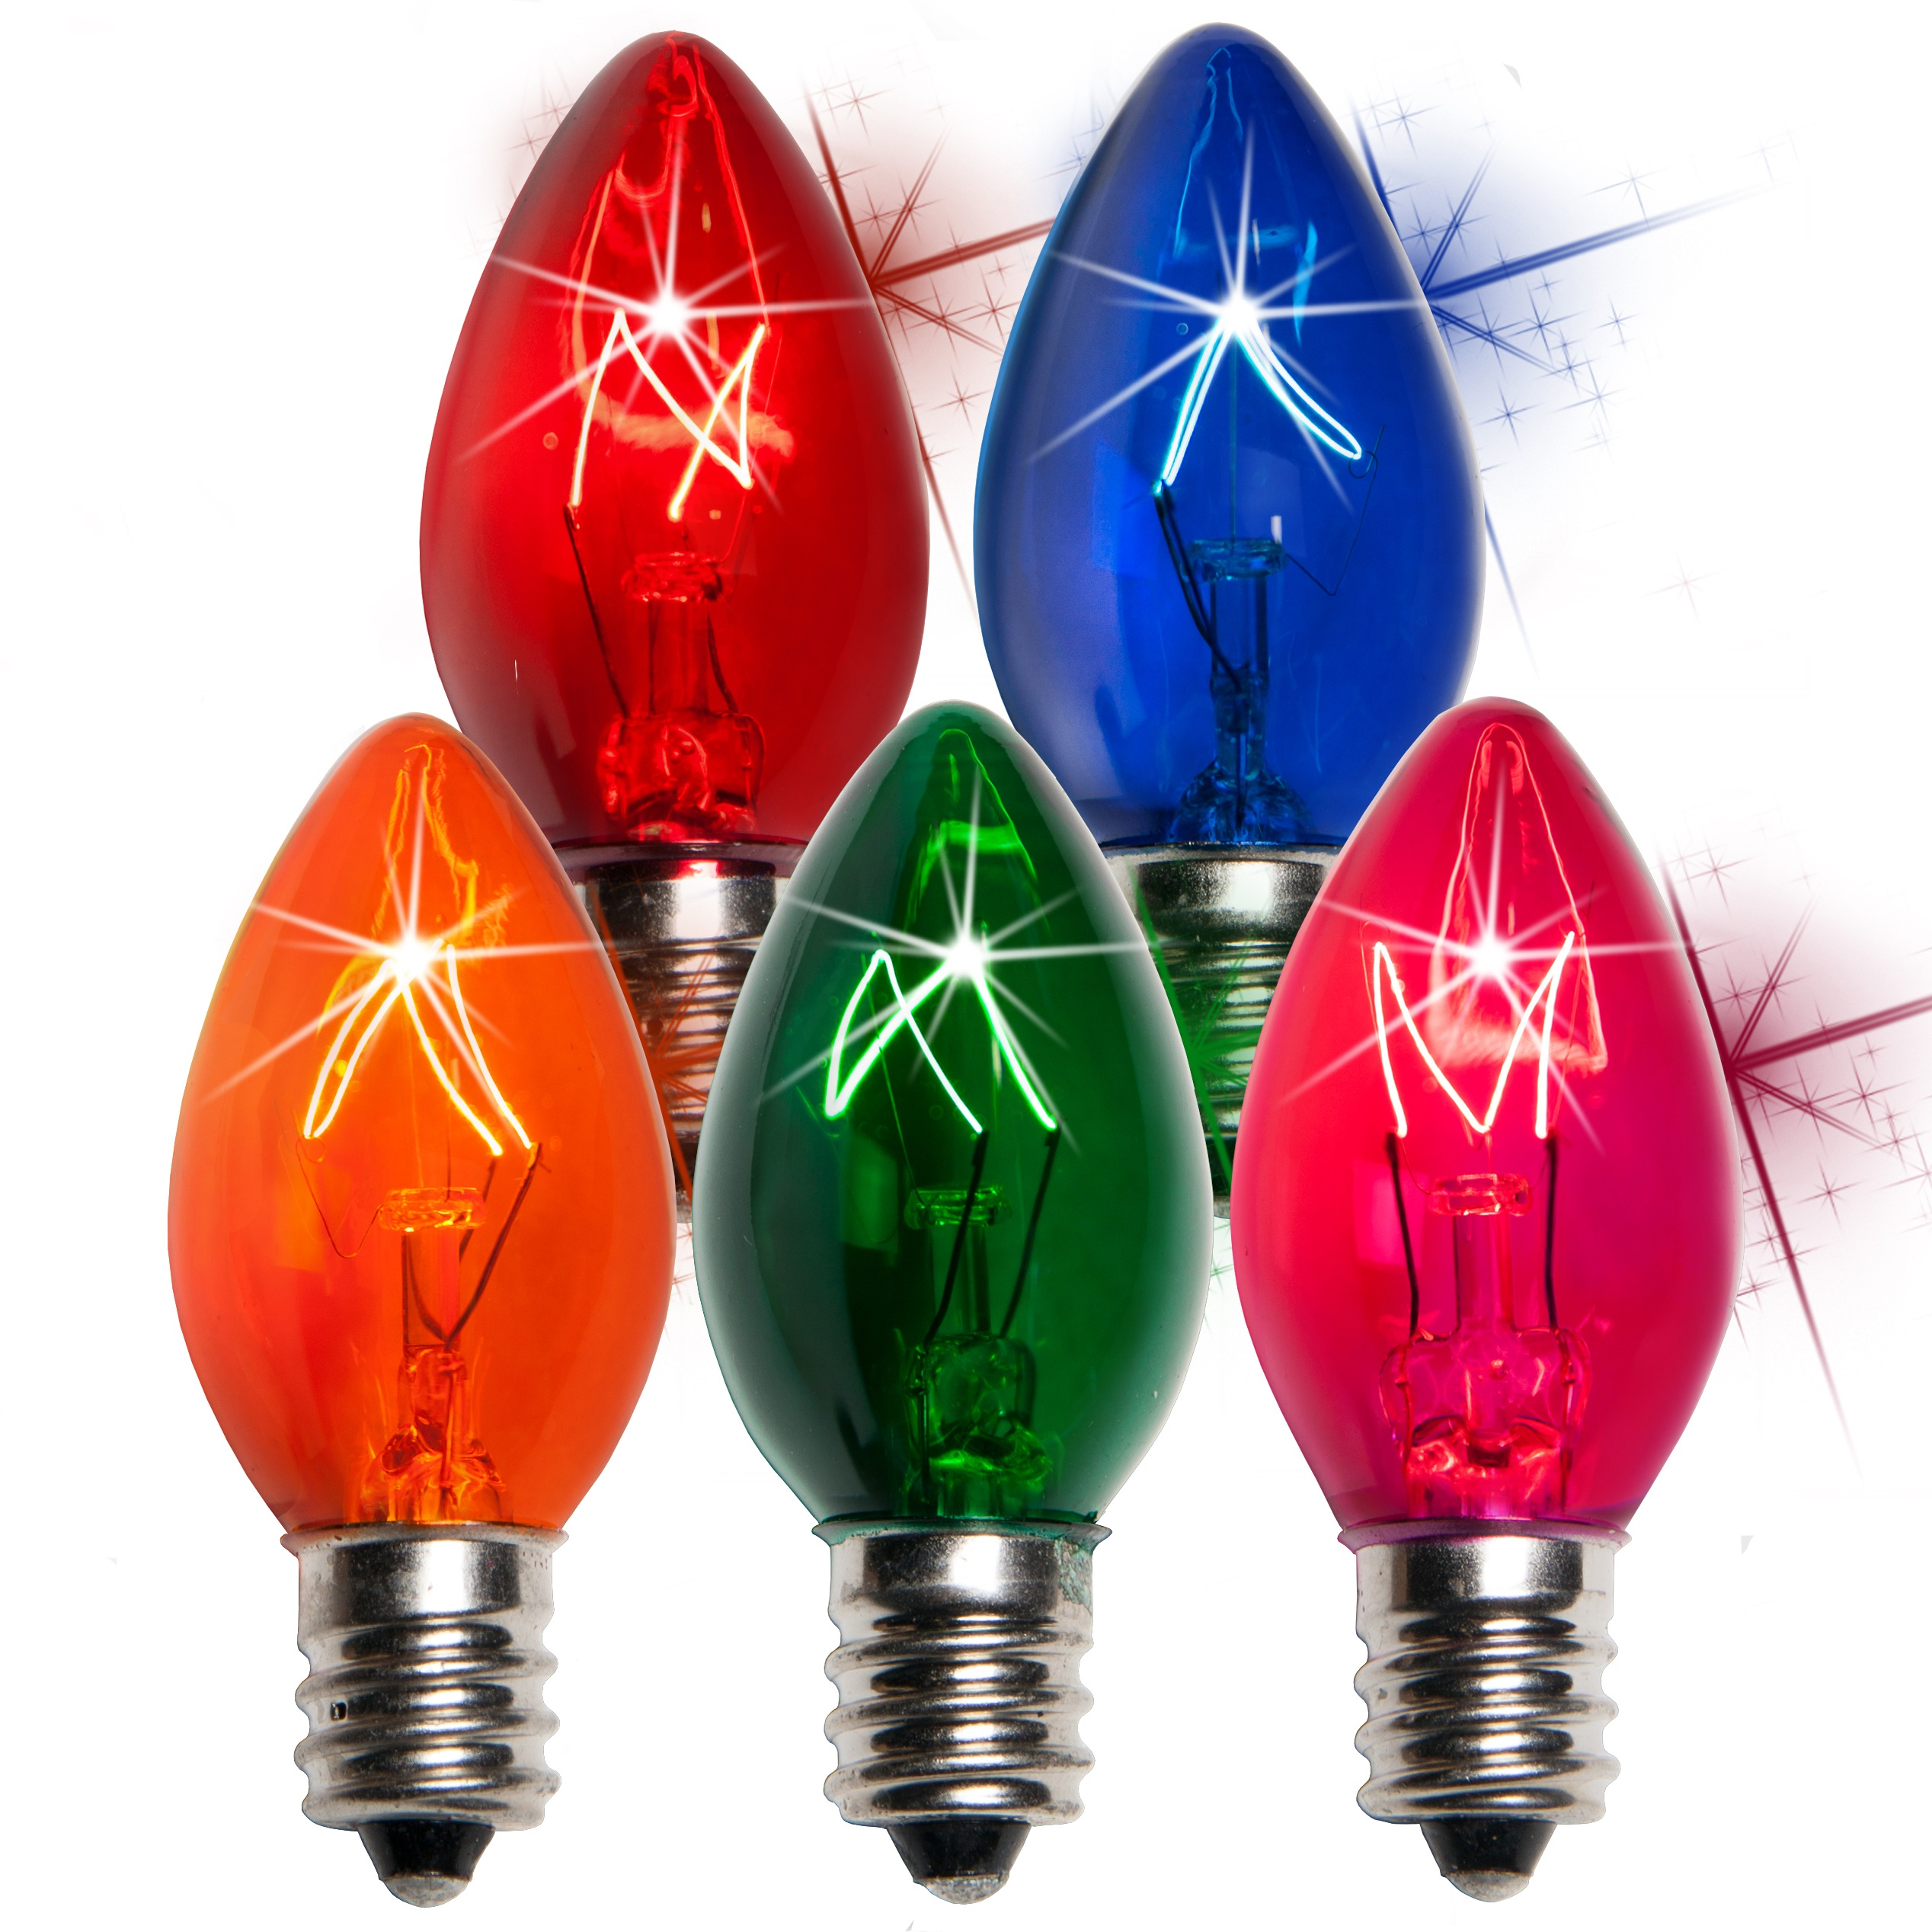 Replacement Christmas Lights Bulbs